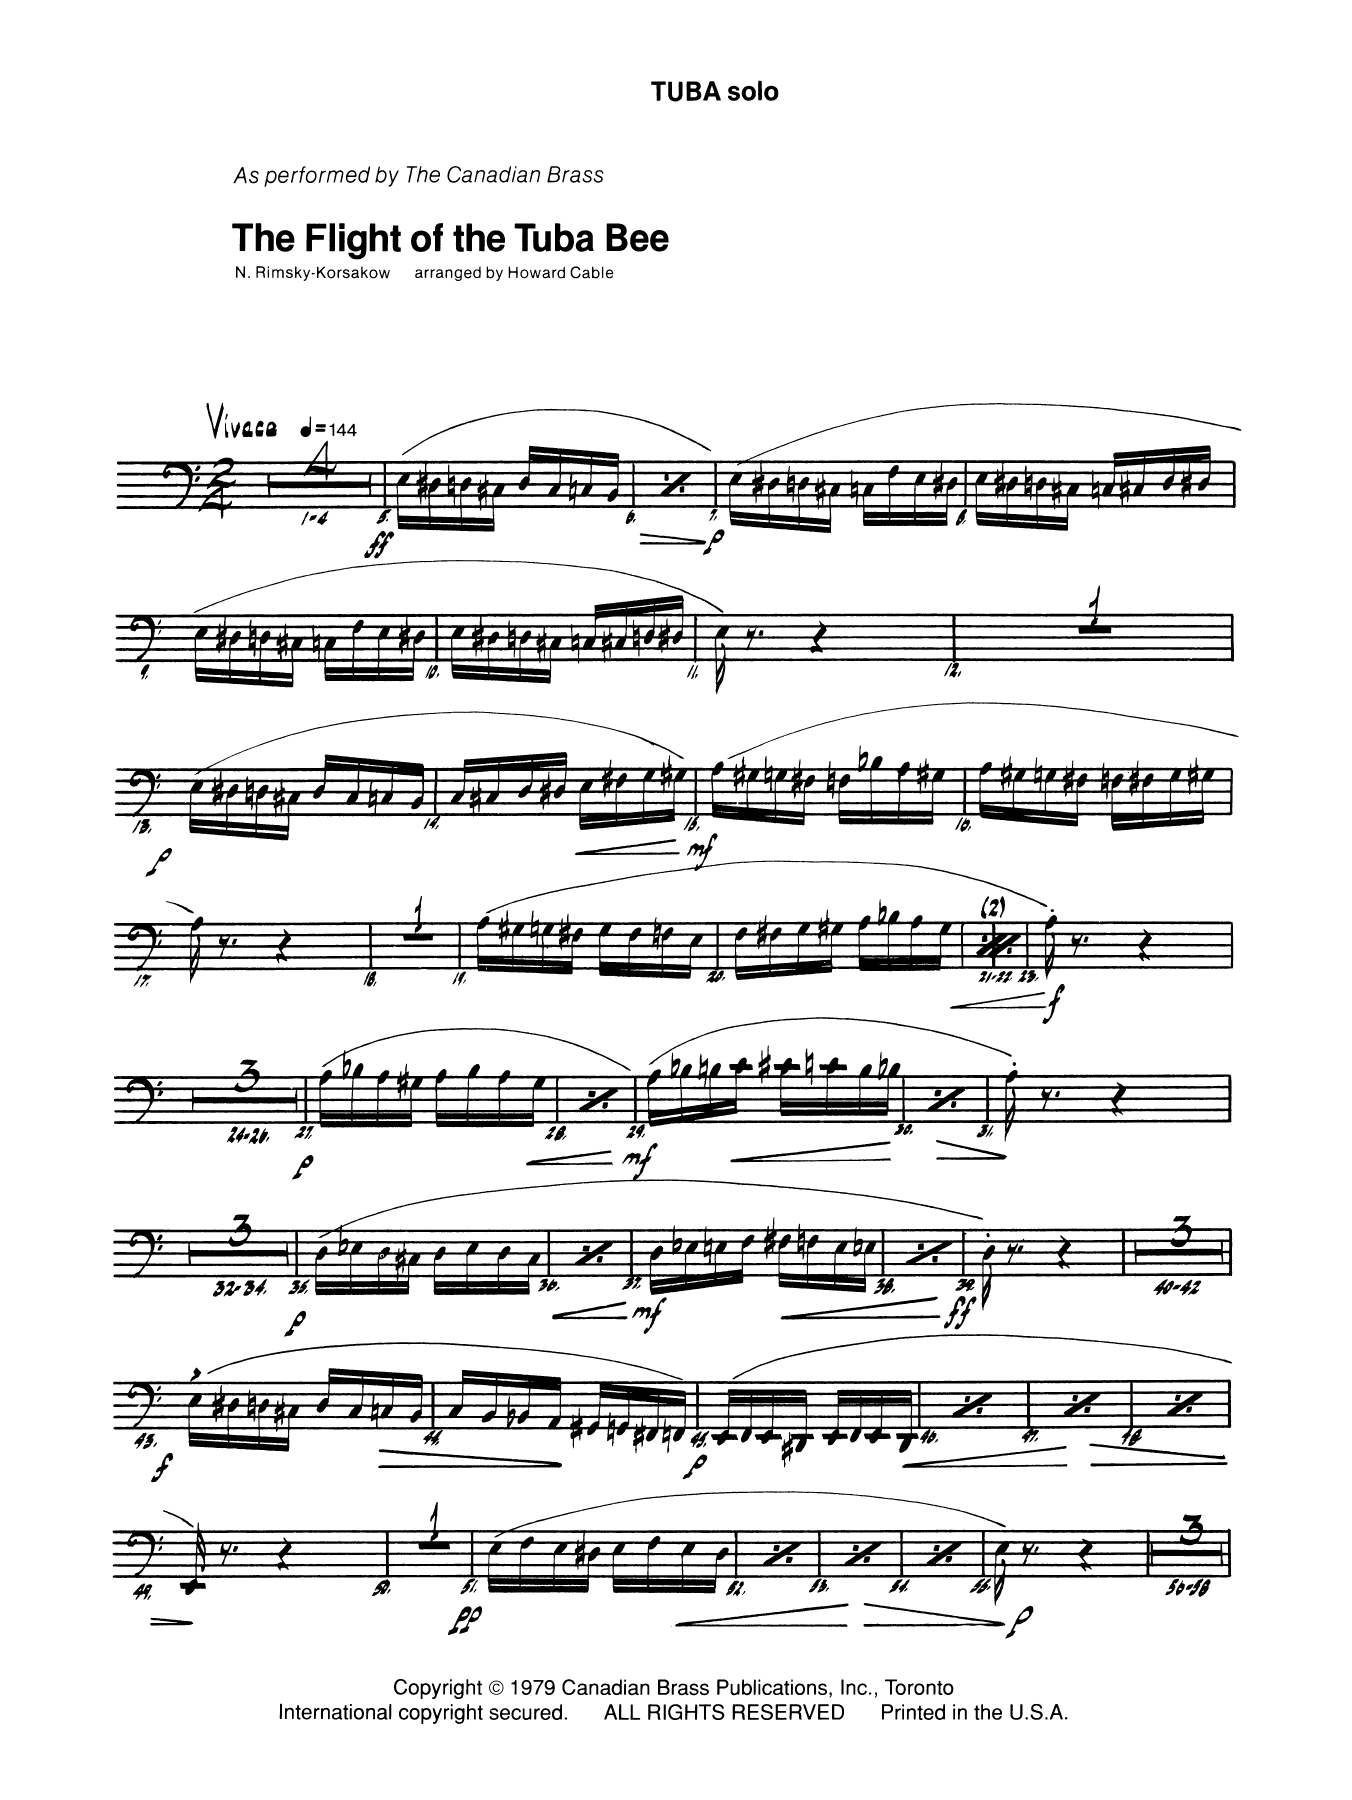 The Flight of the Tuba Bee - Tuba Sheet Music